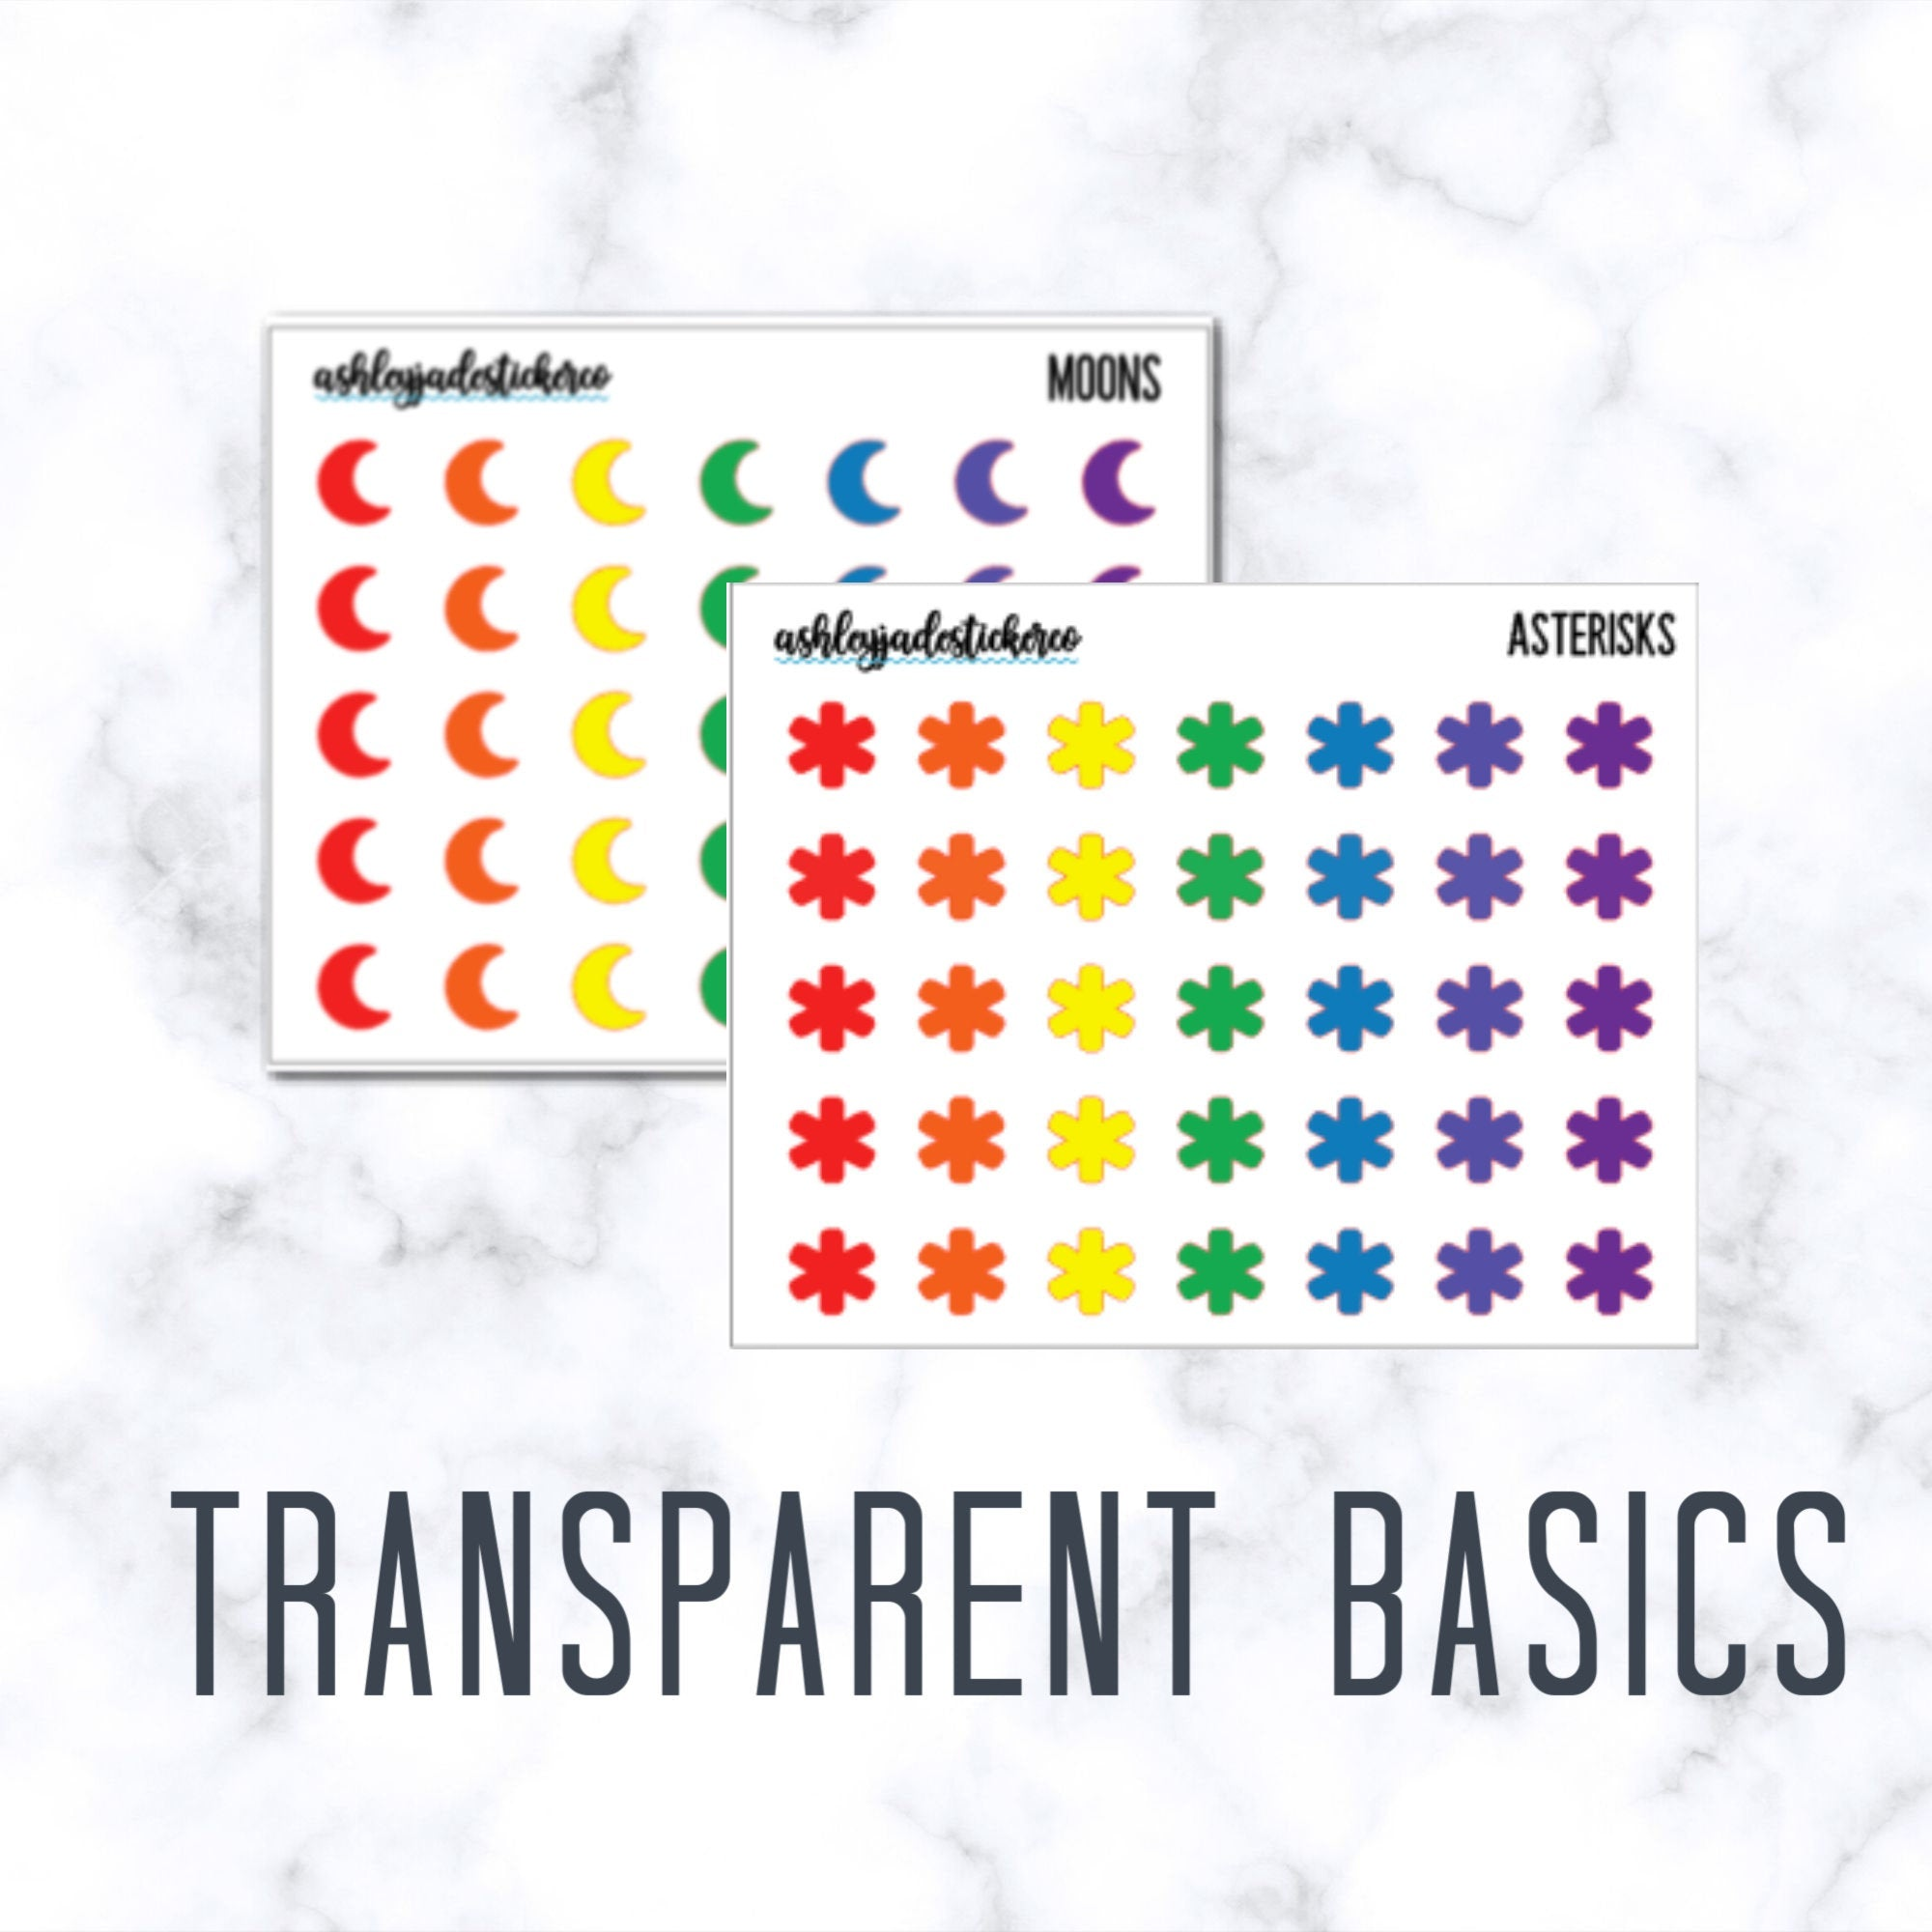 Transparent Basics - Rainbow Icons - Moon | Star | Asterisk Stickers